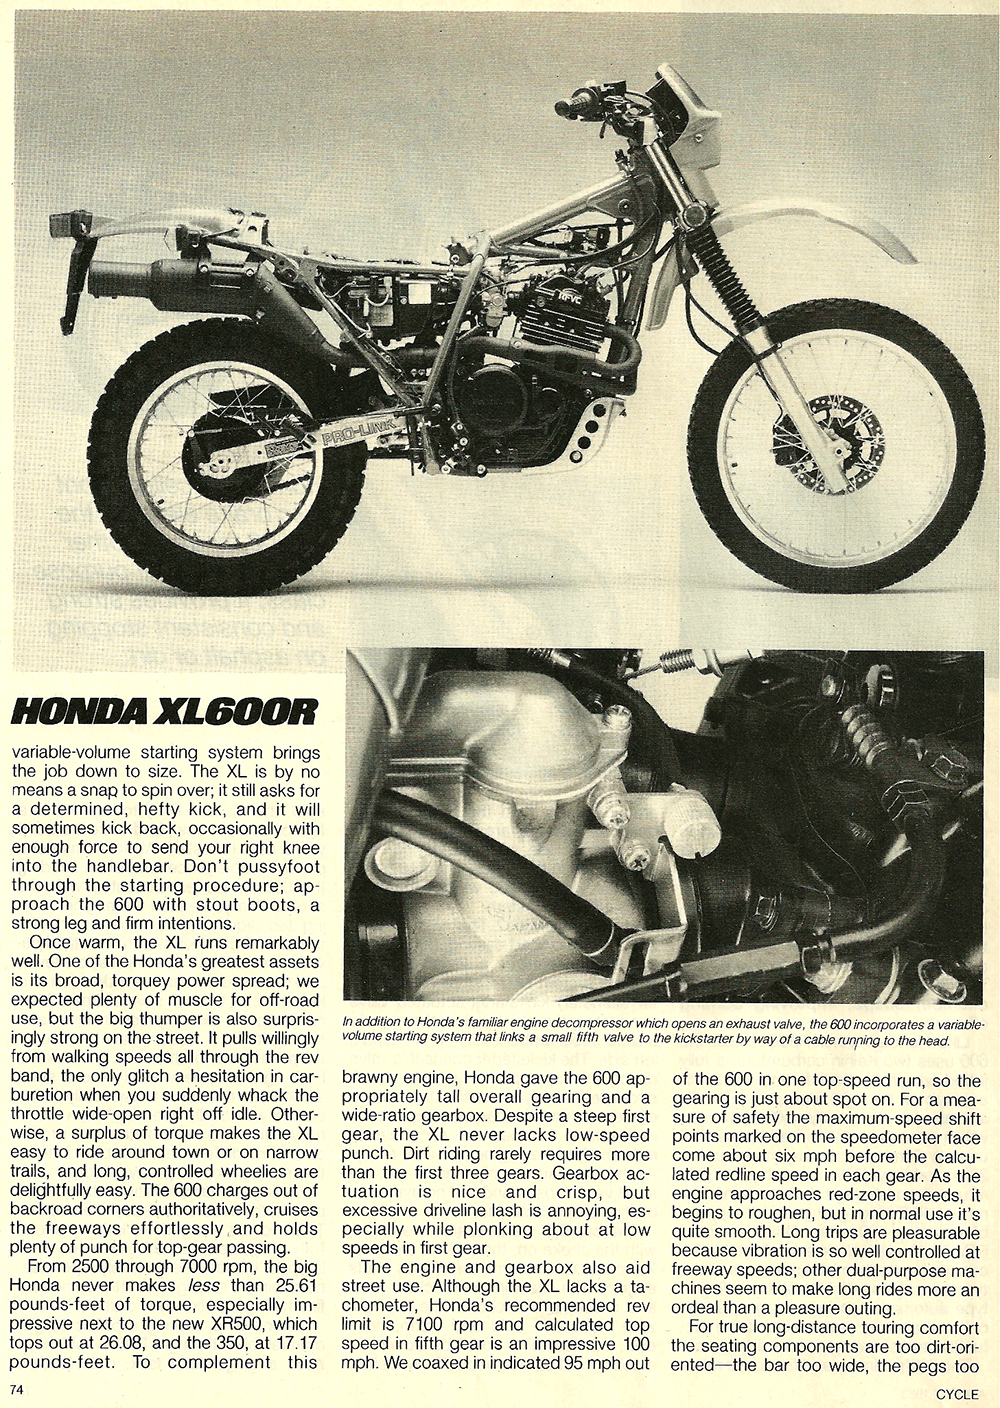 1983 Honda XL600R road test 5.jpg